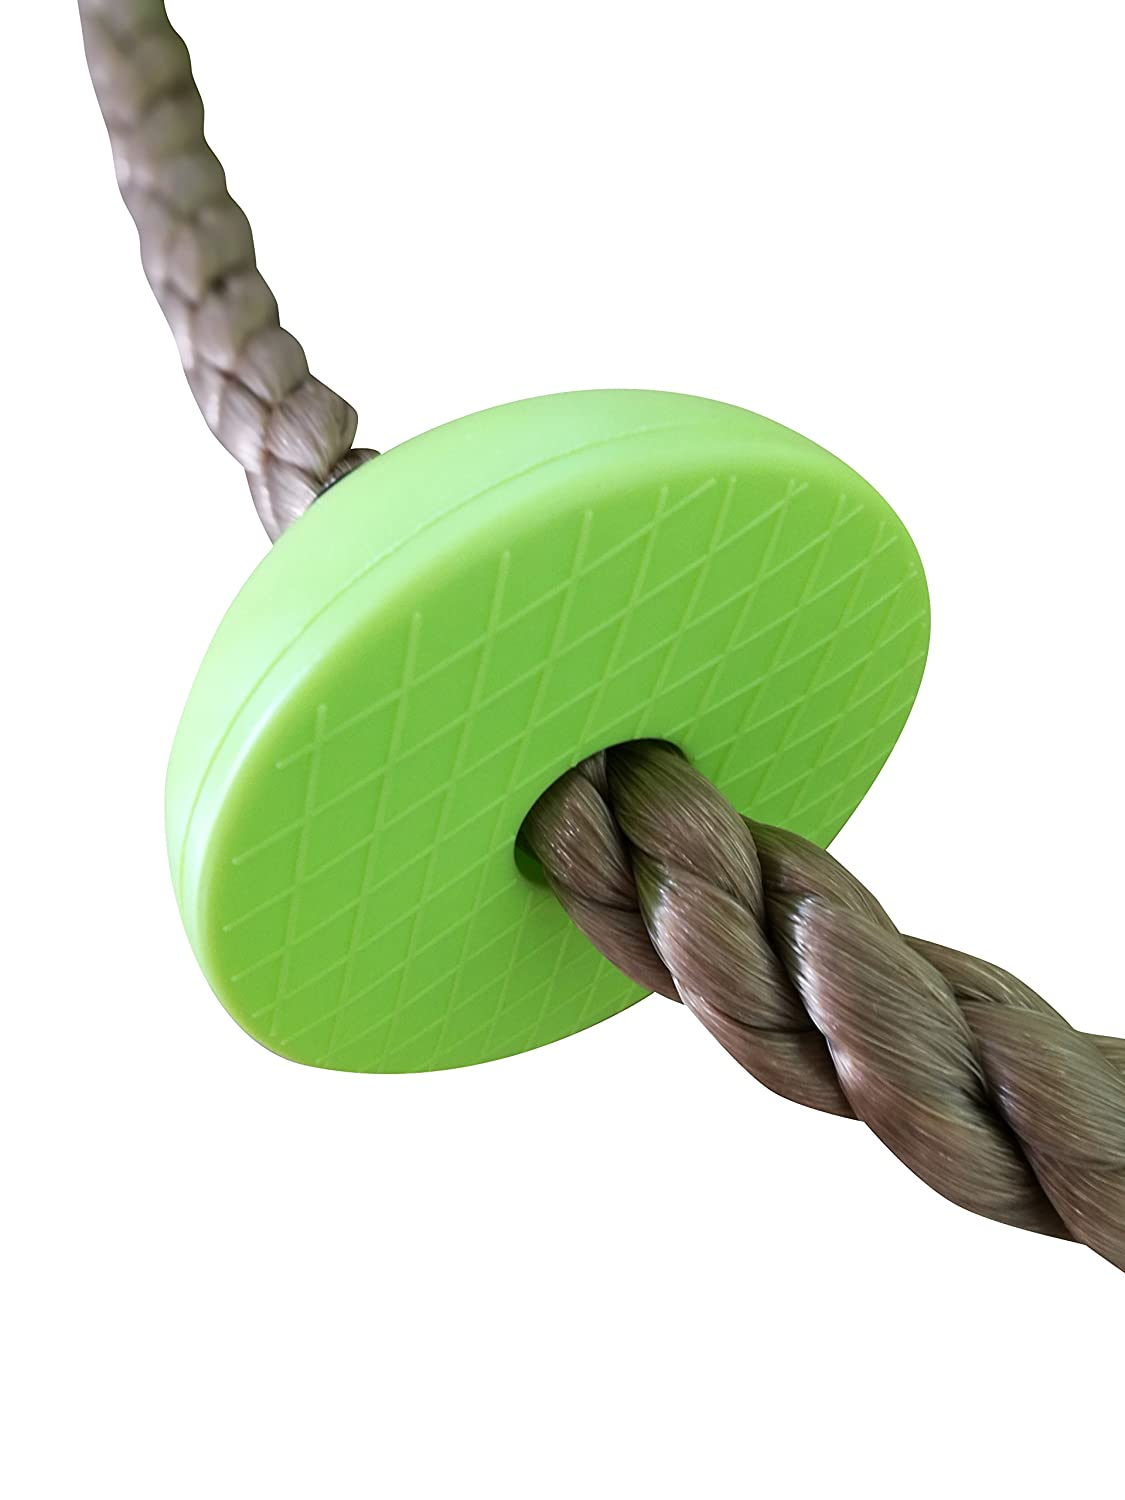 comingfit Climbing Rope for Kids-Outdoor and Indoor Playground Set Accessories for Kids